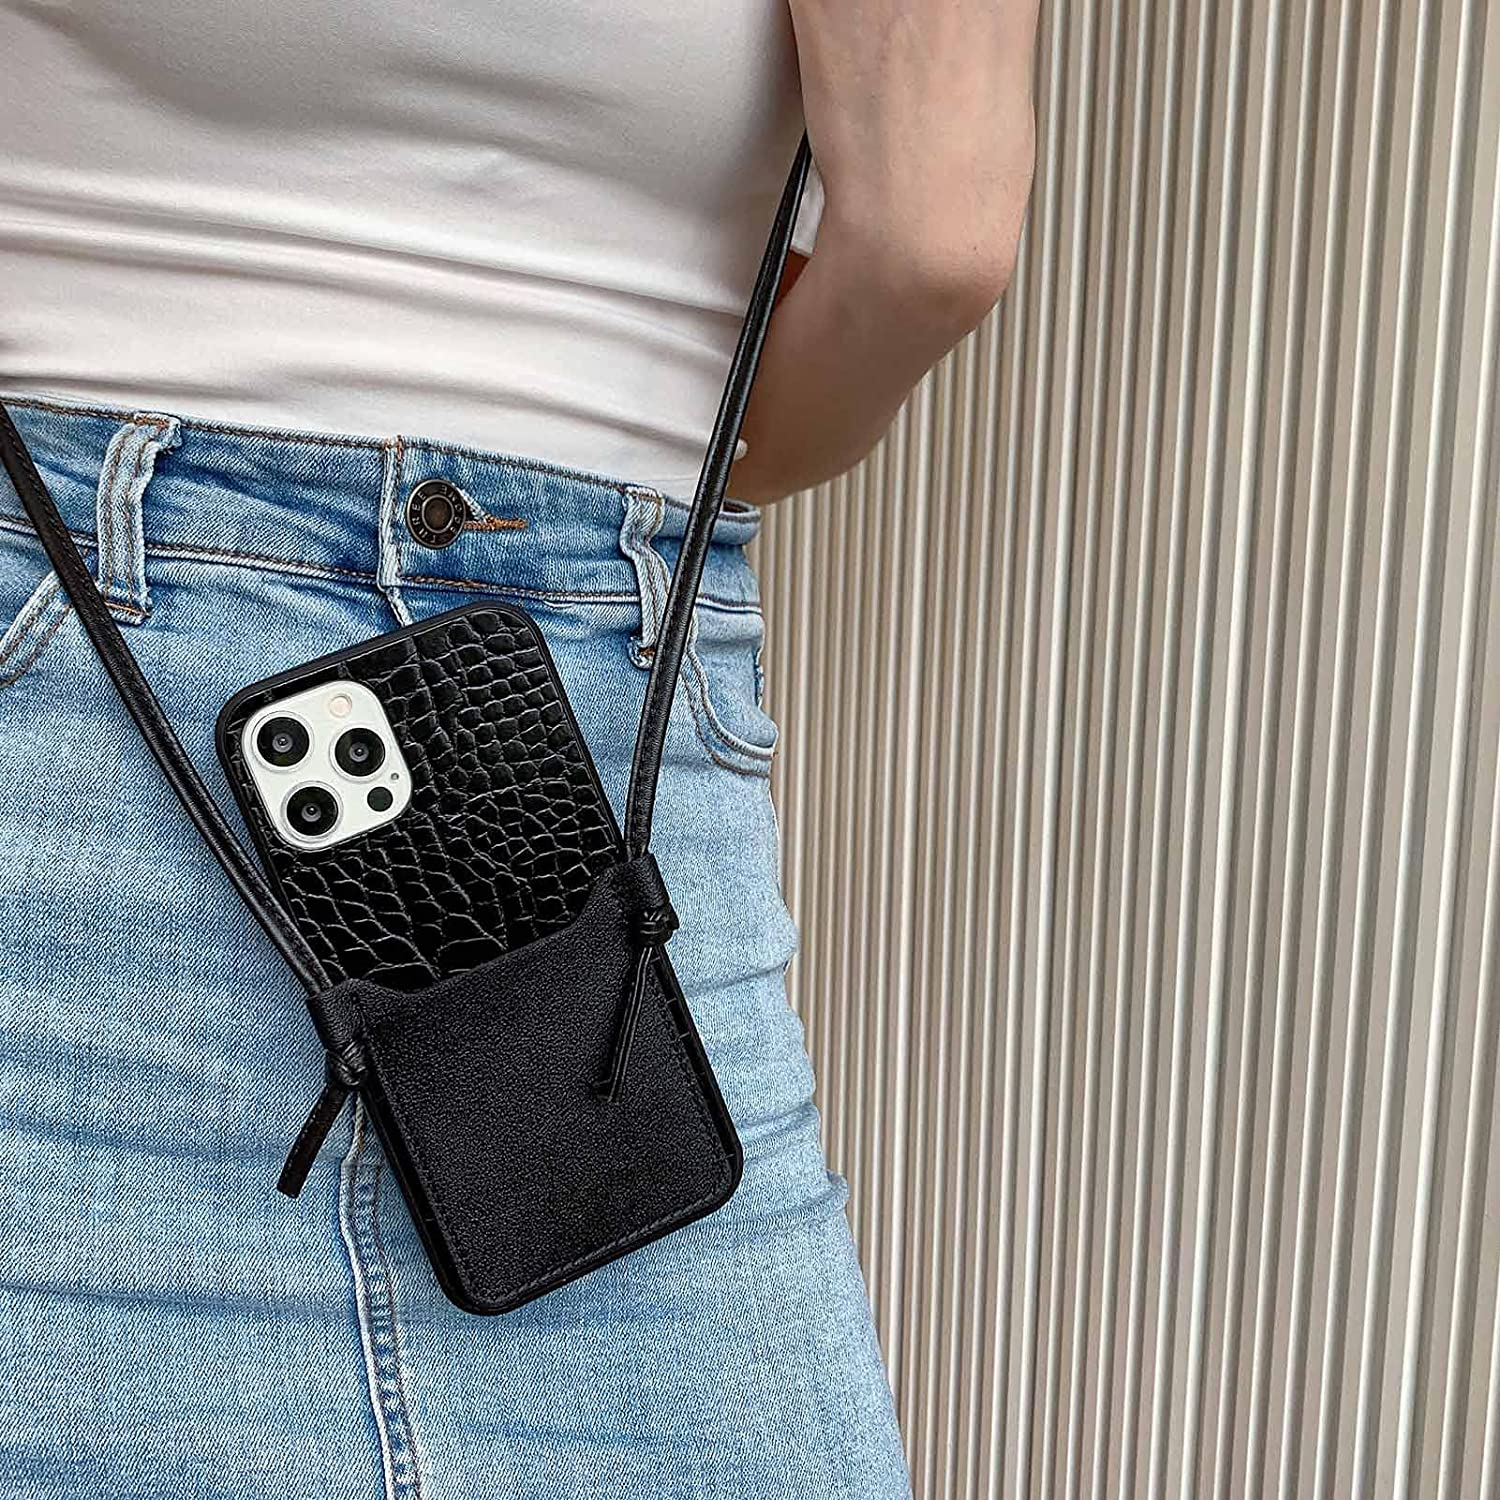 Leather Wallet Case Compatible with iPhone 11 Crossbody Phone Case Lightweight Mini Shoulder Bag Wallet for Women Lanyard Crocodile Pattern Shockproof Case(Crocodile Black,Iphone11)